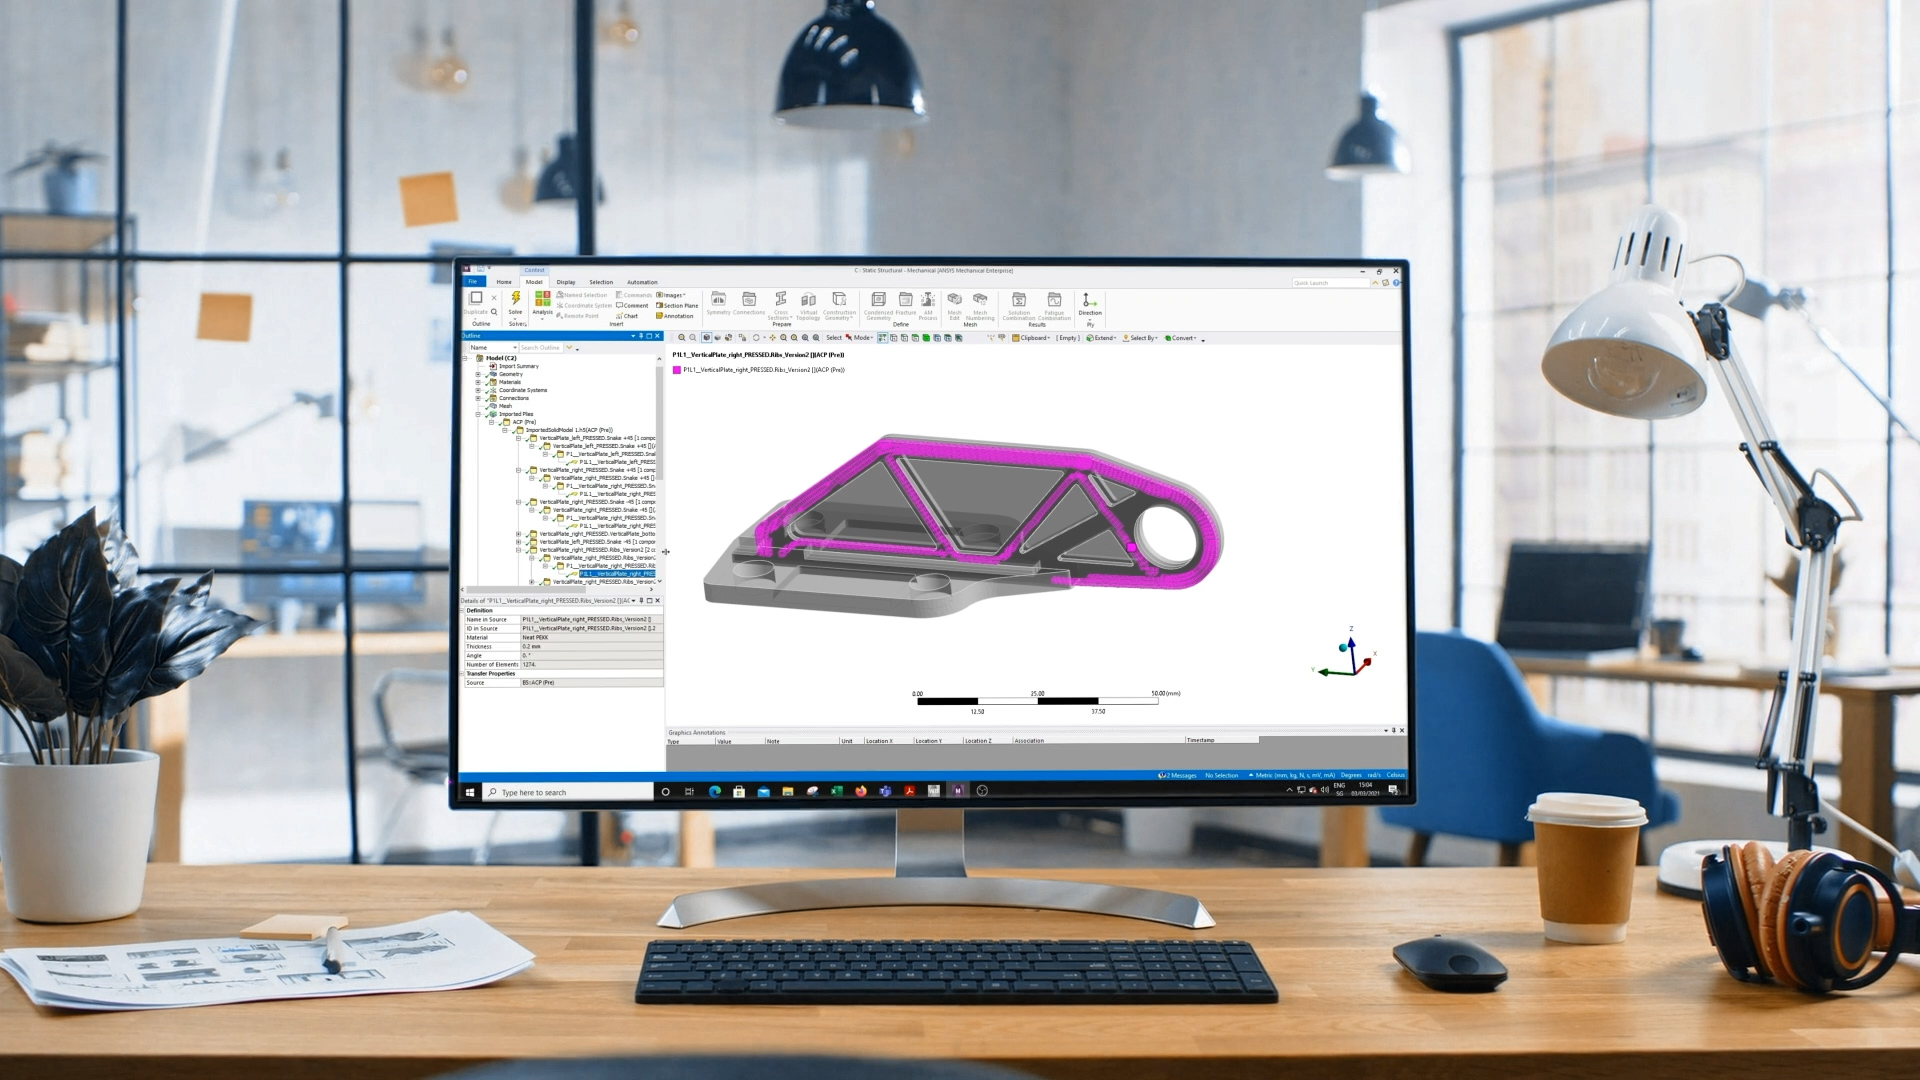 The Fibrify® software enables you to print composite parts reinforced with continuous fibers